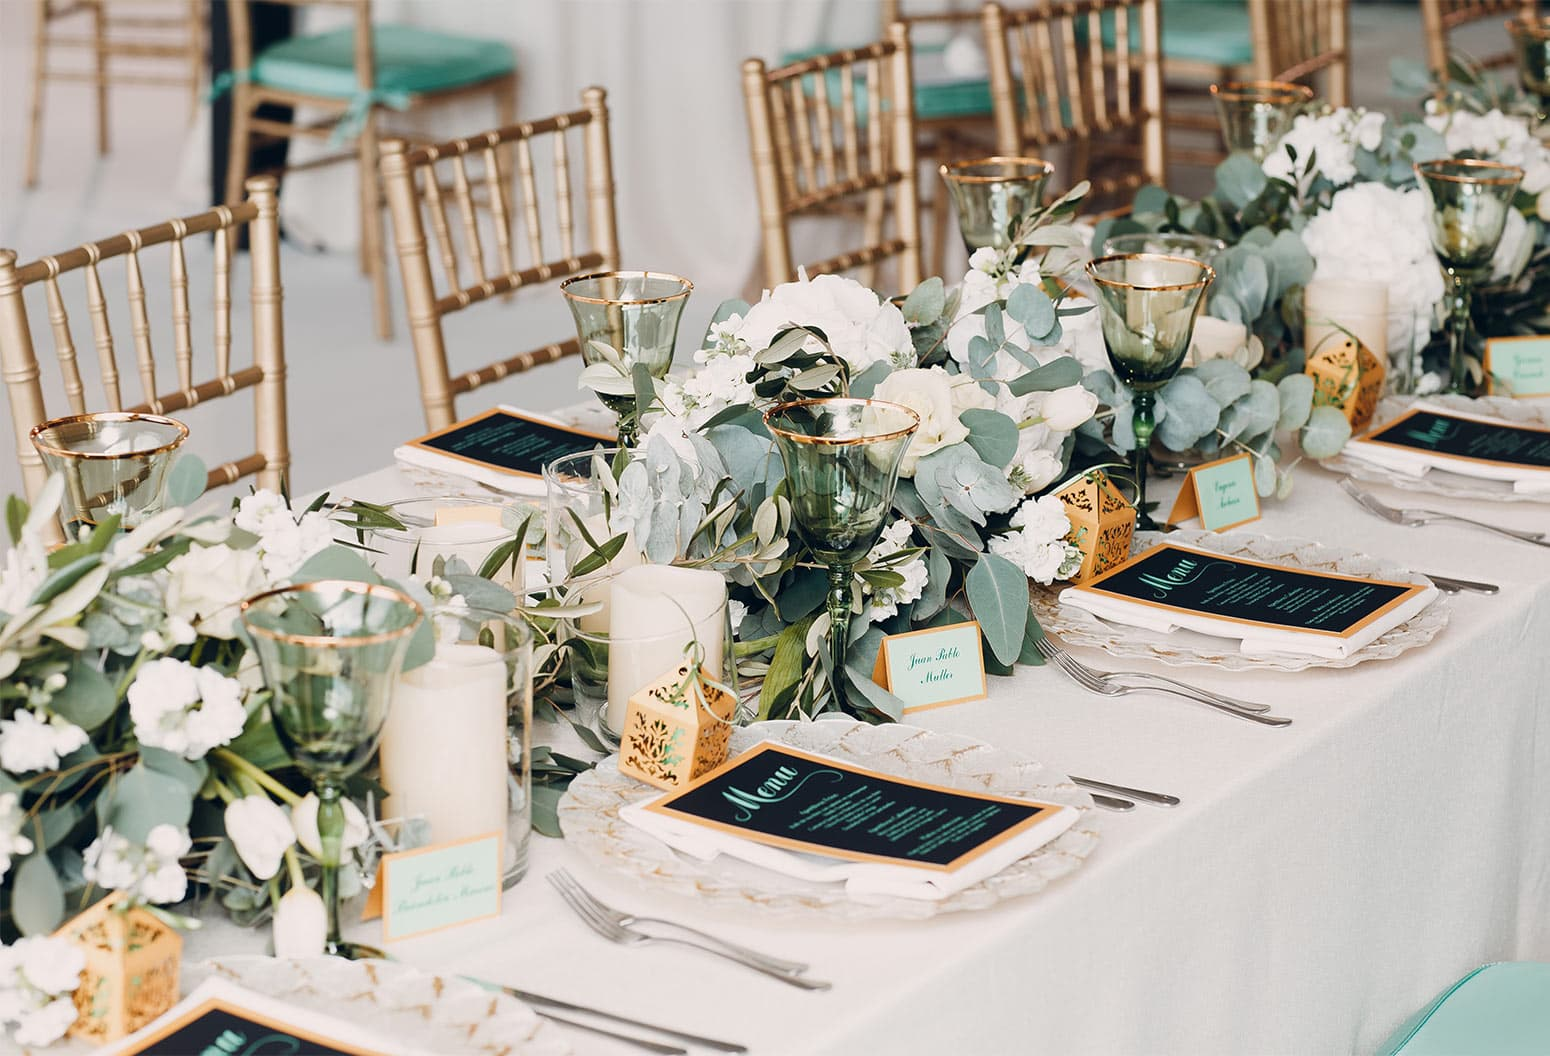 Table set for a wedding with menus